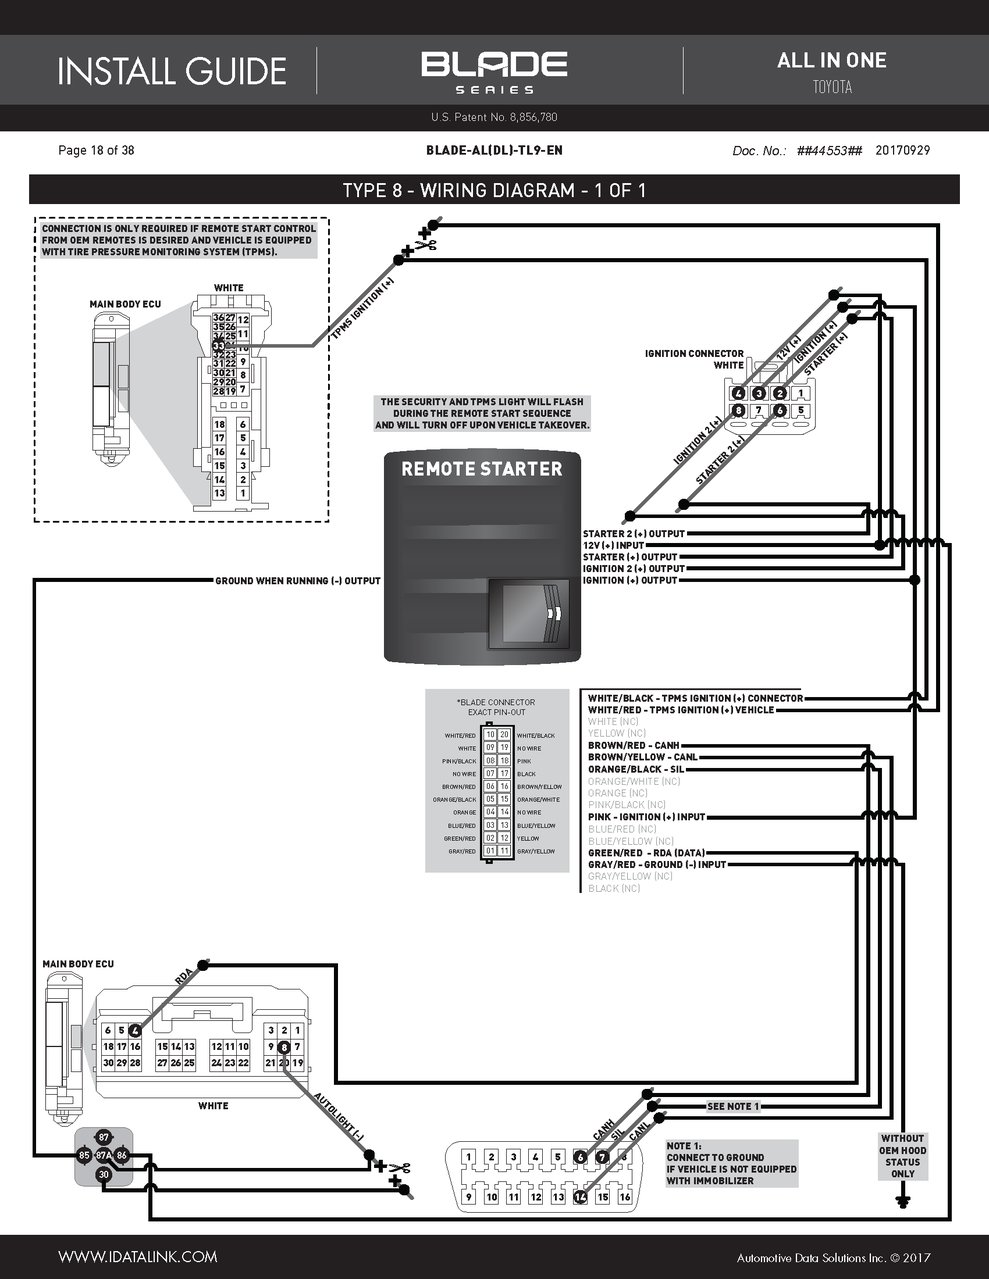 Wondrous Blade Sr 2 1 Esc Wiring Diagram Wiring Digital Resources Indicompassionincorg